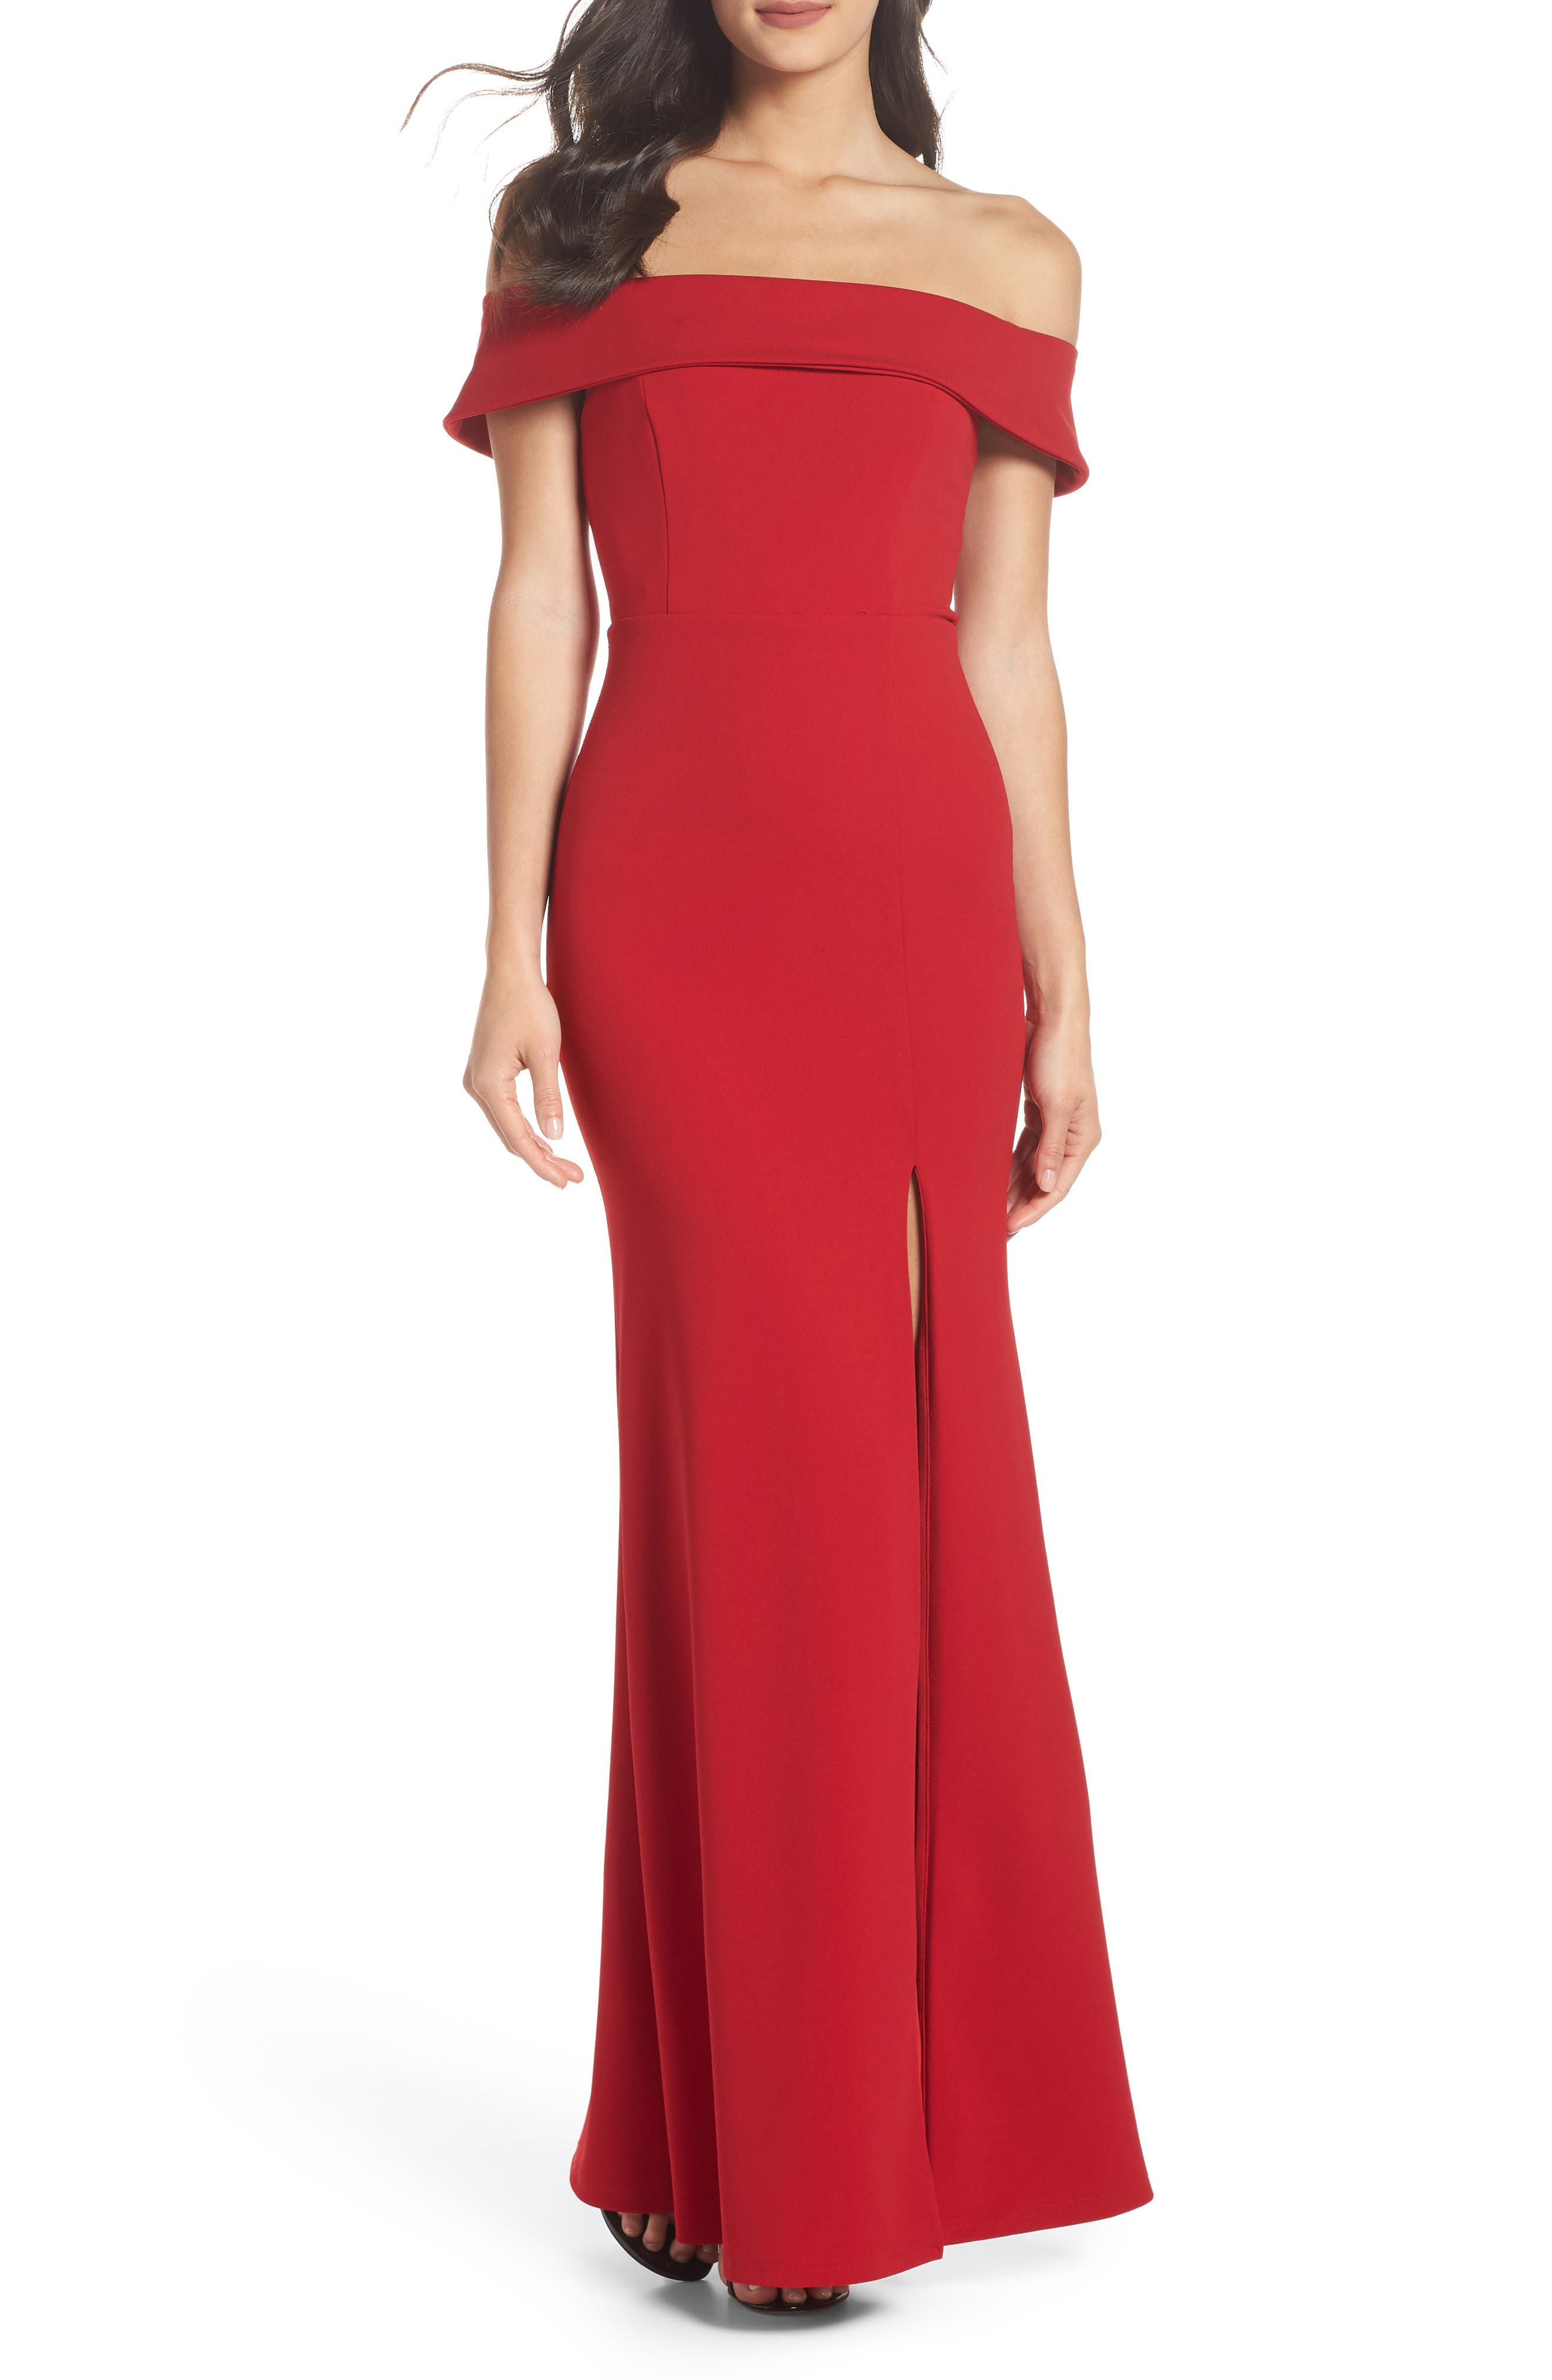 LULUS, Off the Shoulder Mermaid Gown, Main thumbnail 1, color, RED